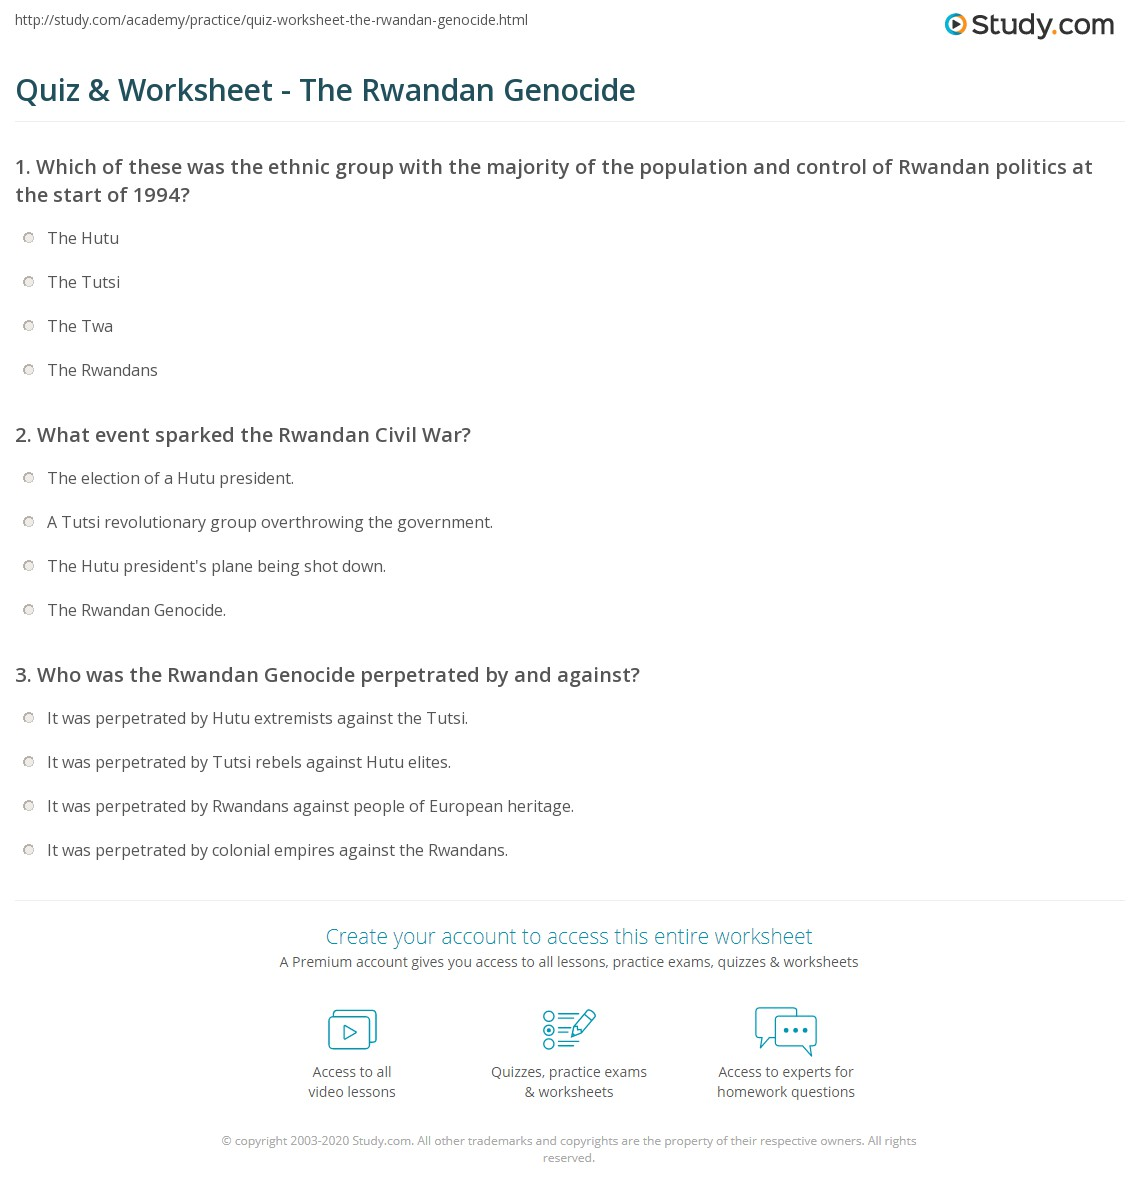 Worksheet Hotel Rwanda Worksheet Mytourvn Worksheet Study Site Worksheet Hotel Rwanda Worksheet Hotel Rwanda Essay About Paper Smoking  Research Paperquot Genocide Quiz Amp Worksheet